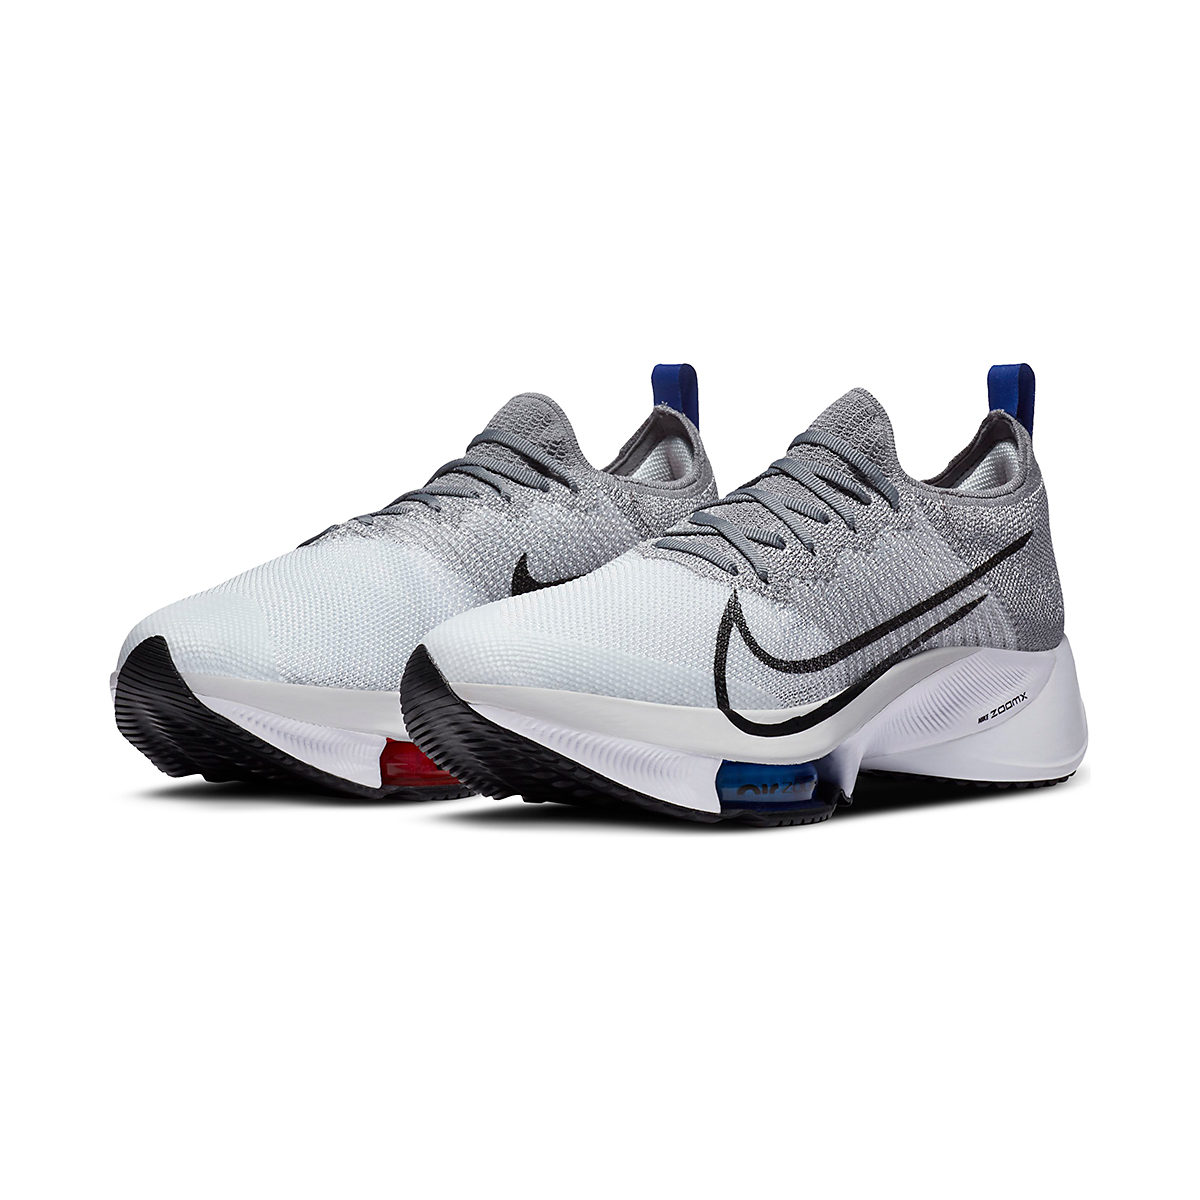 Men's Nike Air Zoom Tempo NEXT% Running Shoe - Color: Particle Grey/Black-Pure Platinum - Size: 6 - Width: Regular, Particle Grey/Black-Pure Platinum, large, image 4